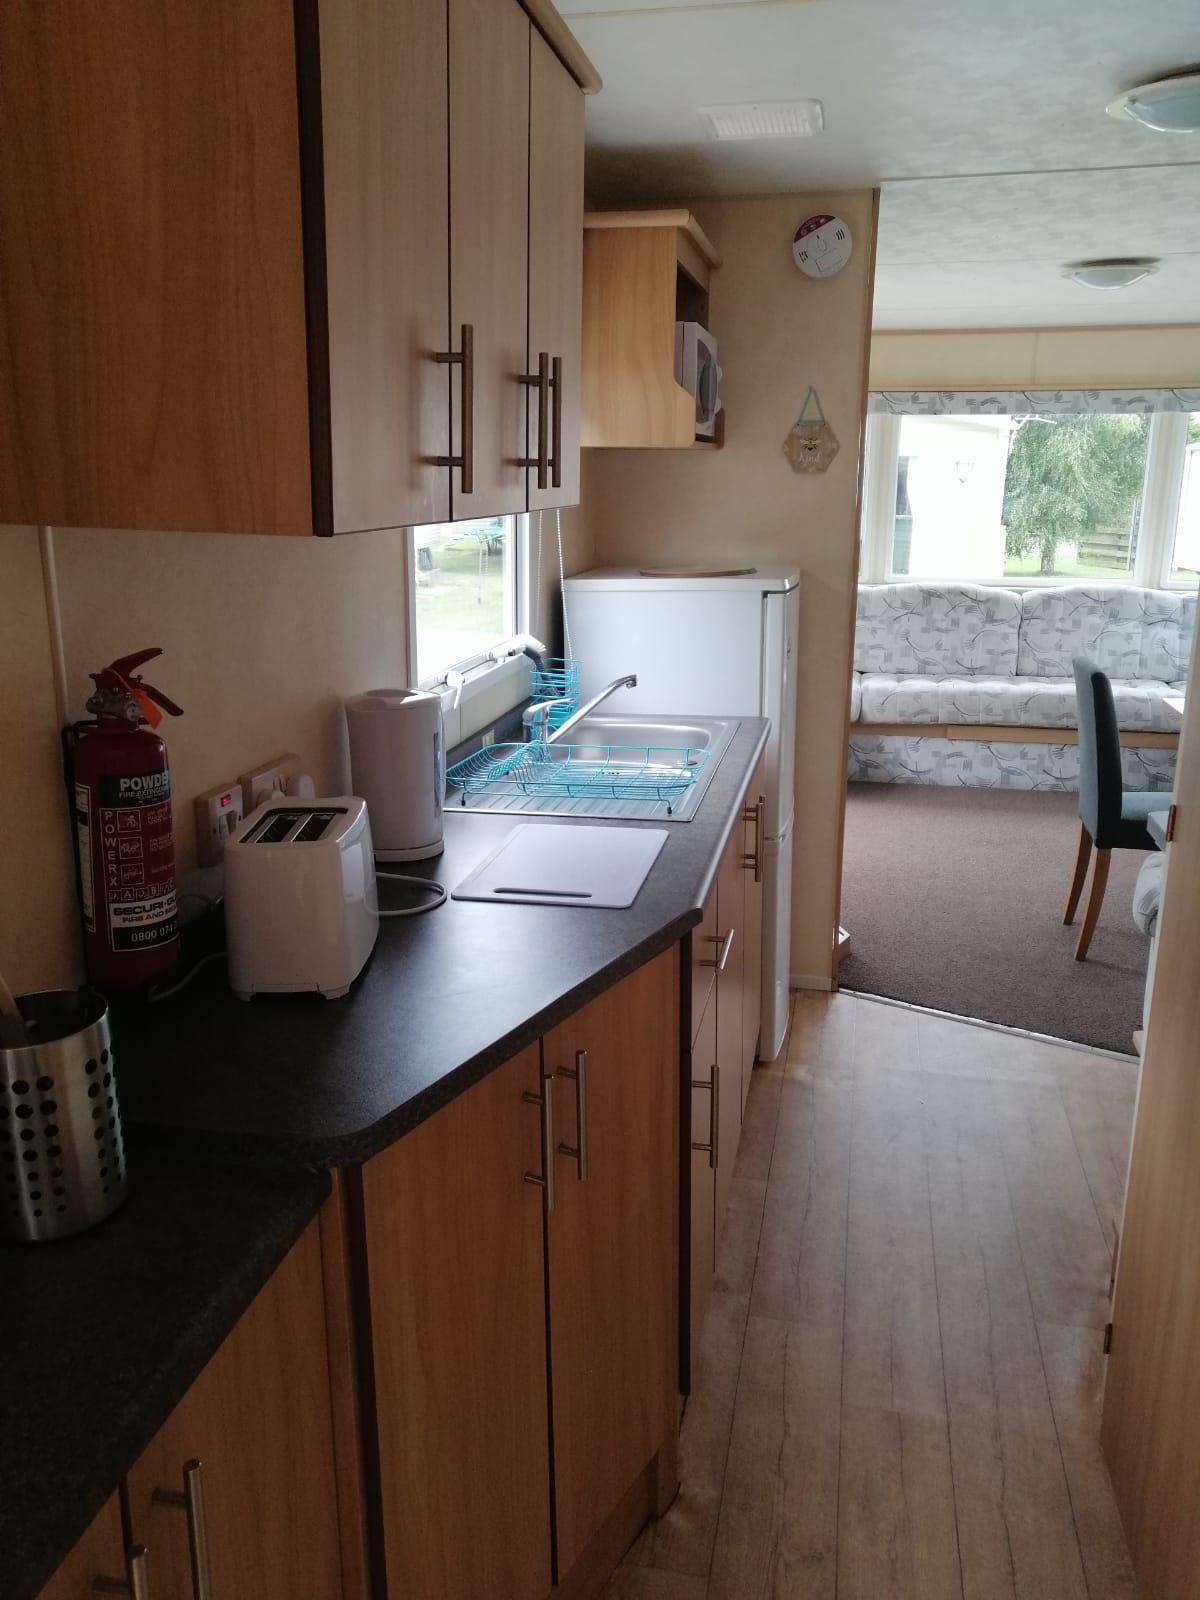 Well equipped kitchen, ideal for self-catering breaks!